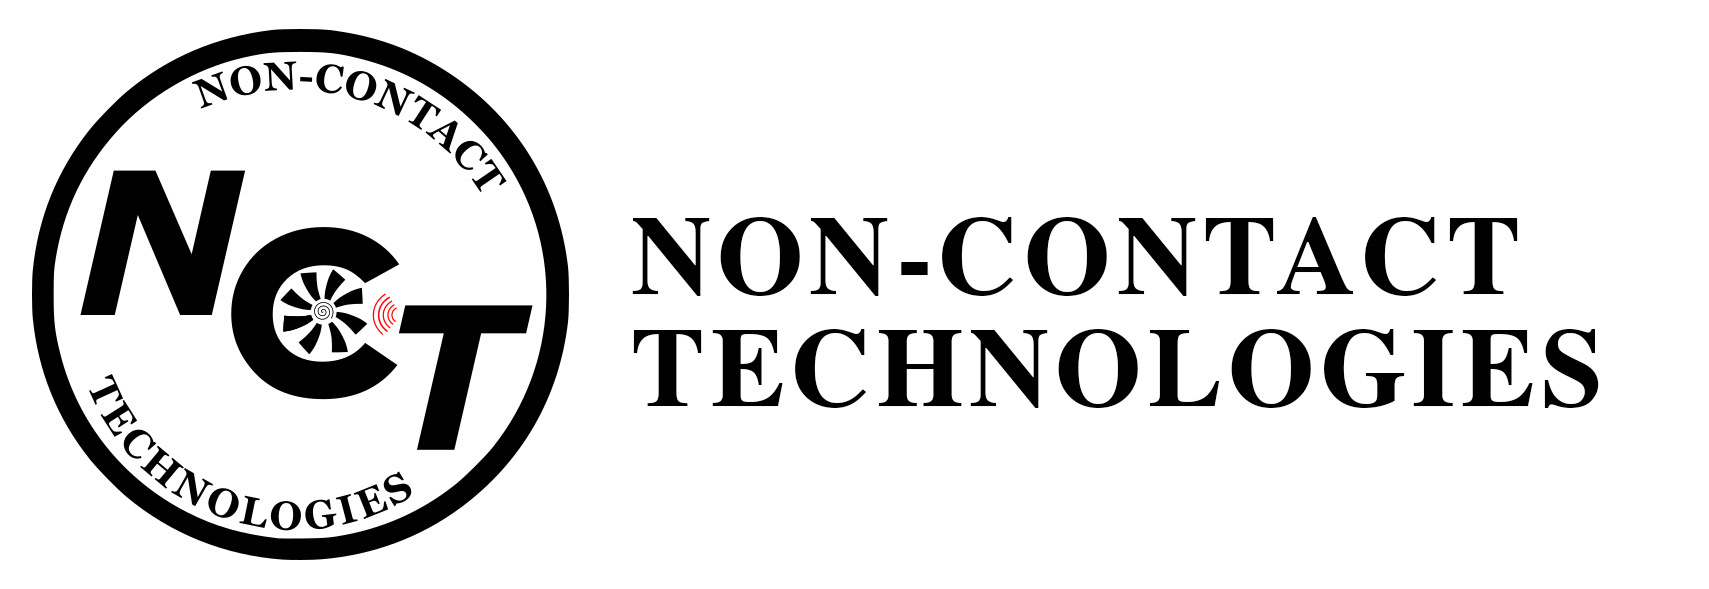 Non-Contact Technologies, LLC